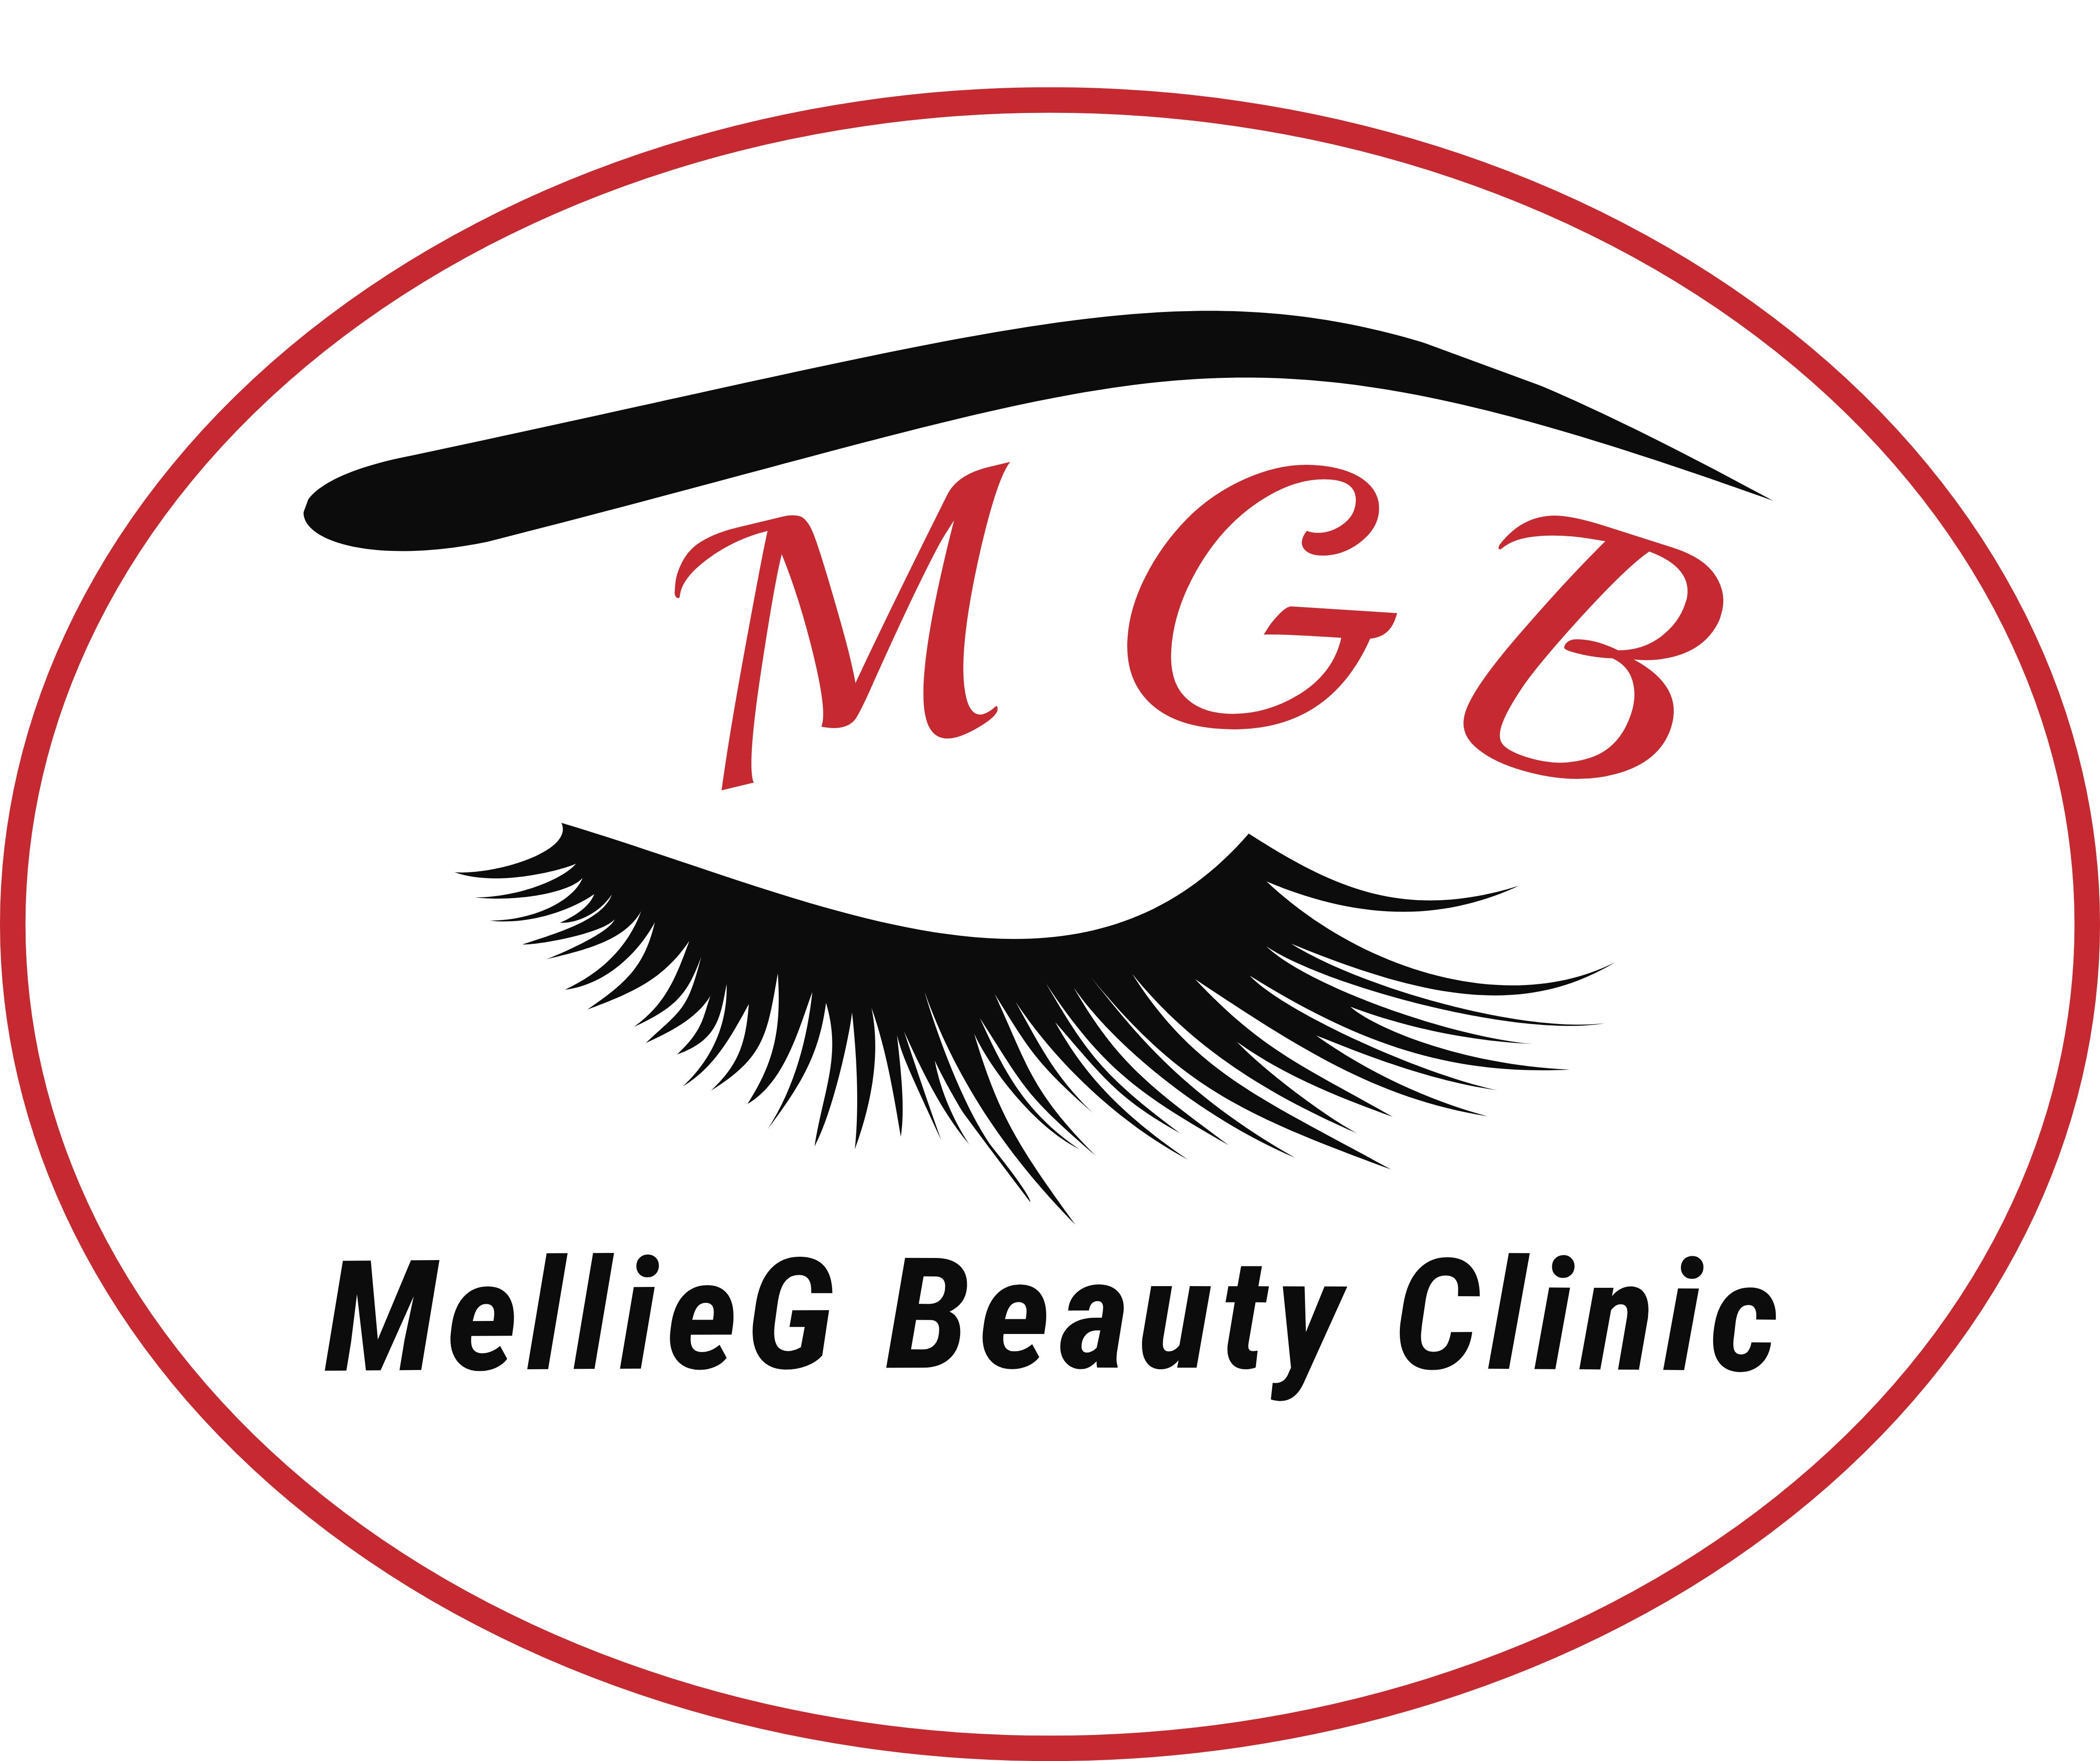 MellieG Beauty Clinic including Permanent Makeup Clinic